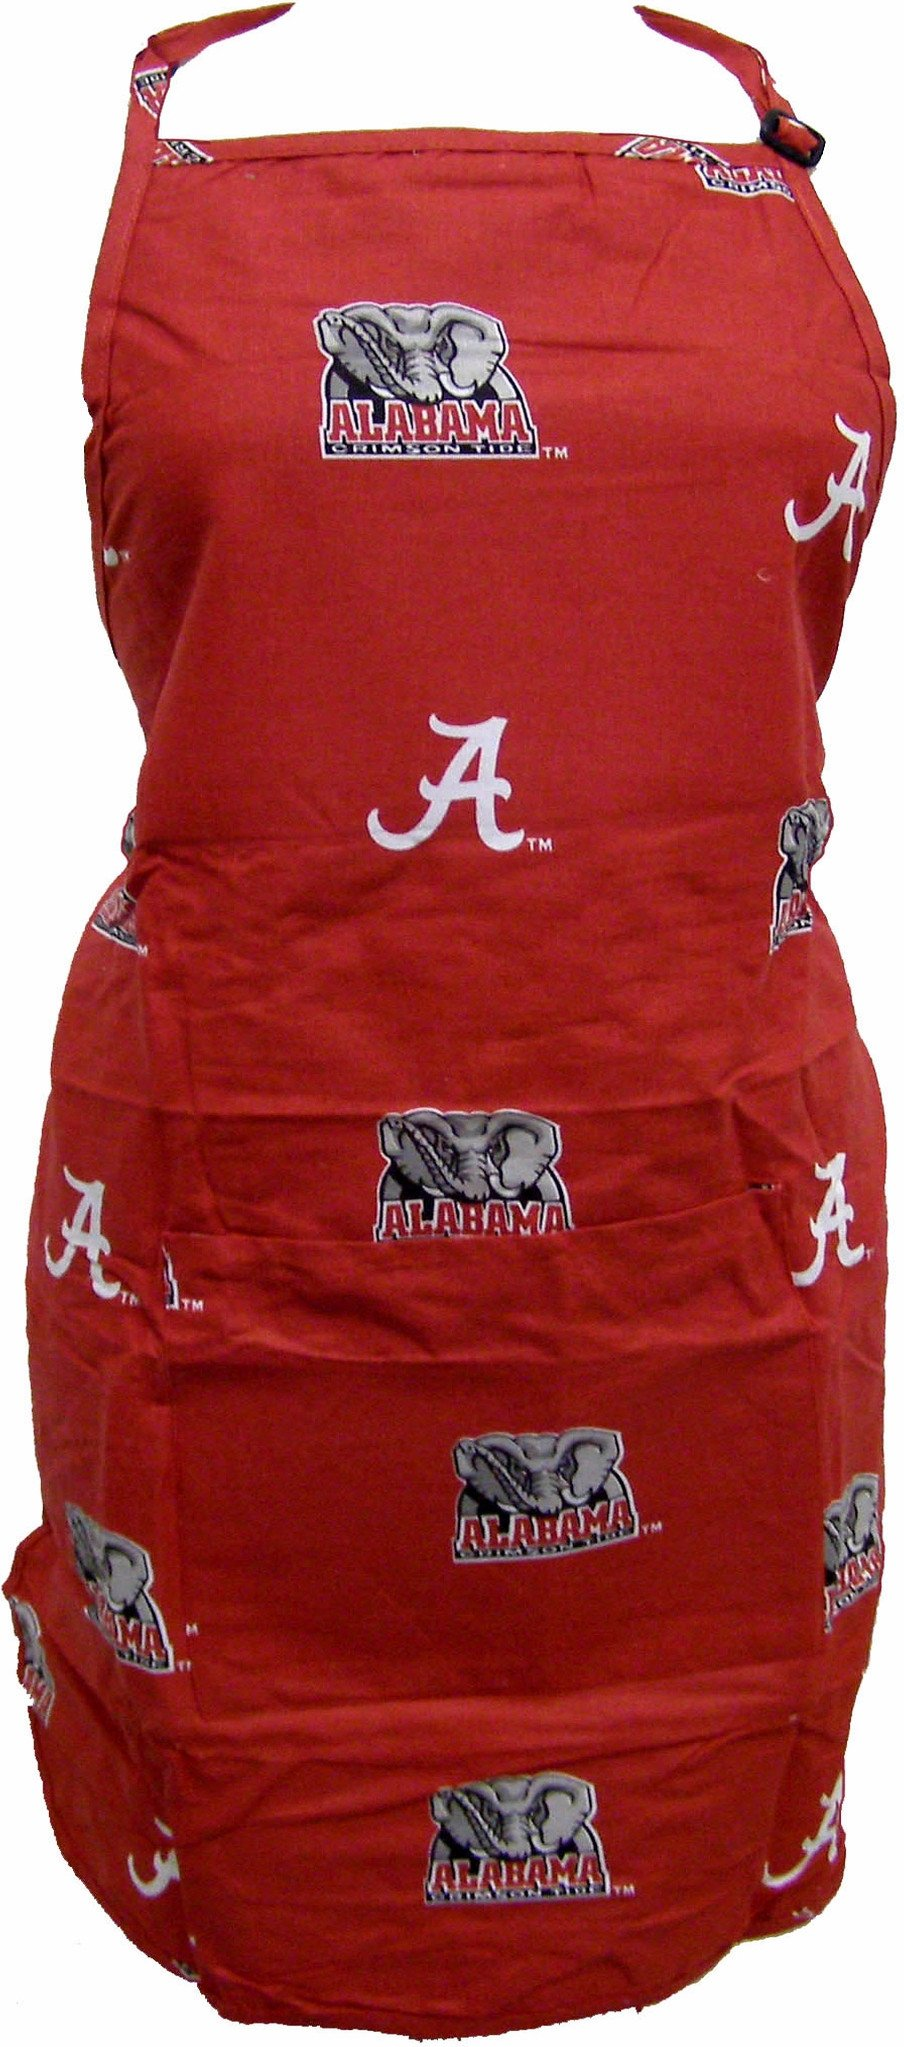 "Alabama Apron 26""X35"" with 9"" pocket - ALAAPR by College Covers from College Covers"